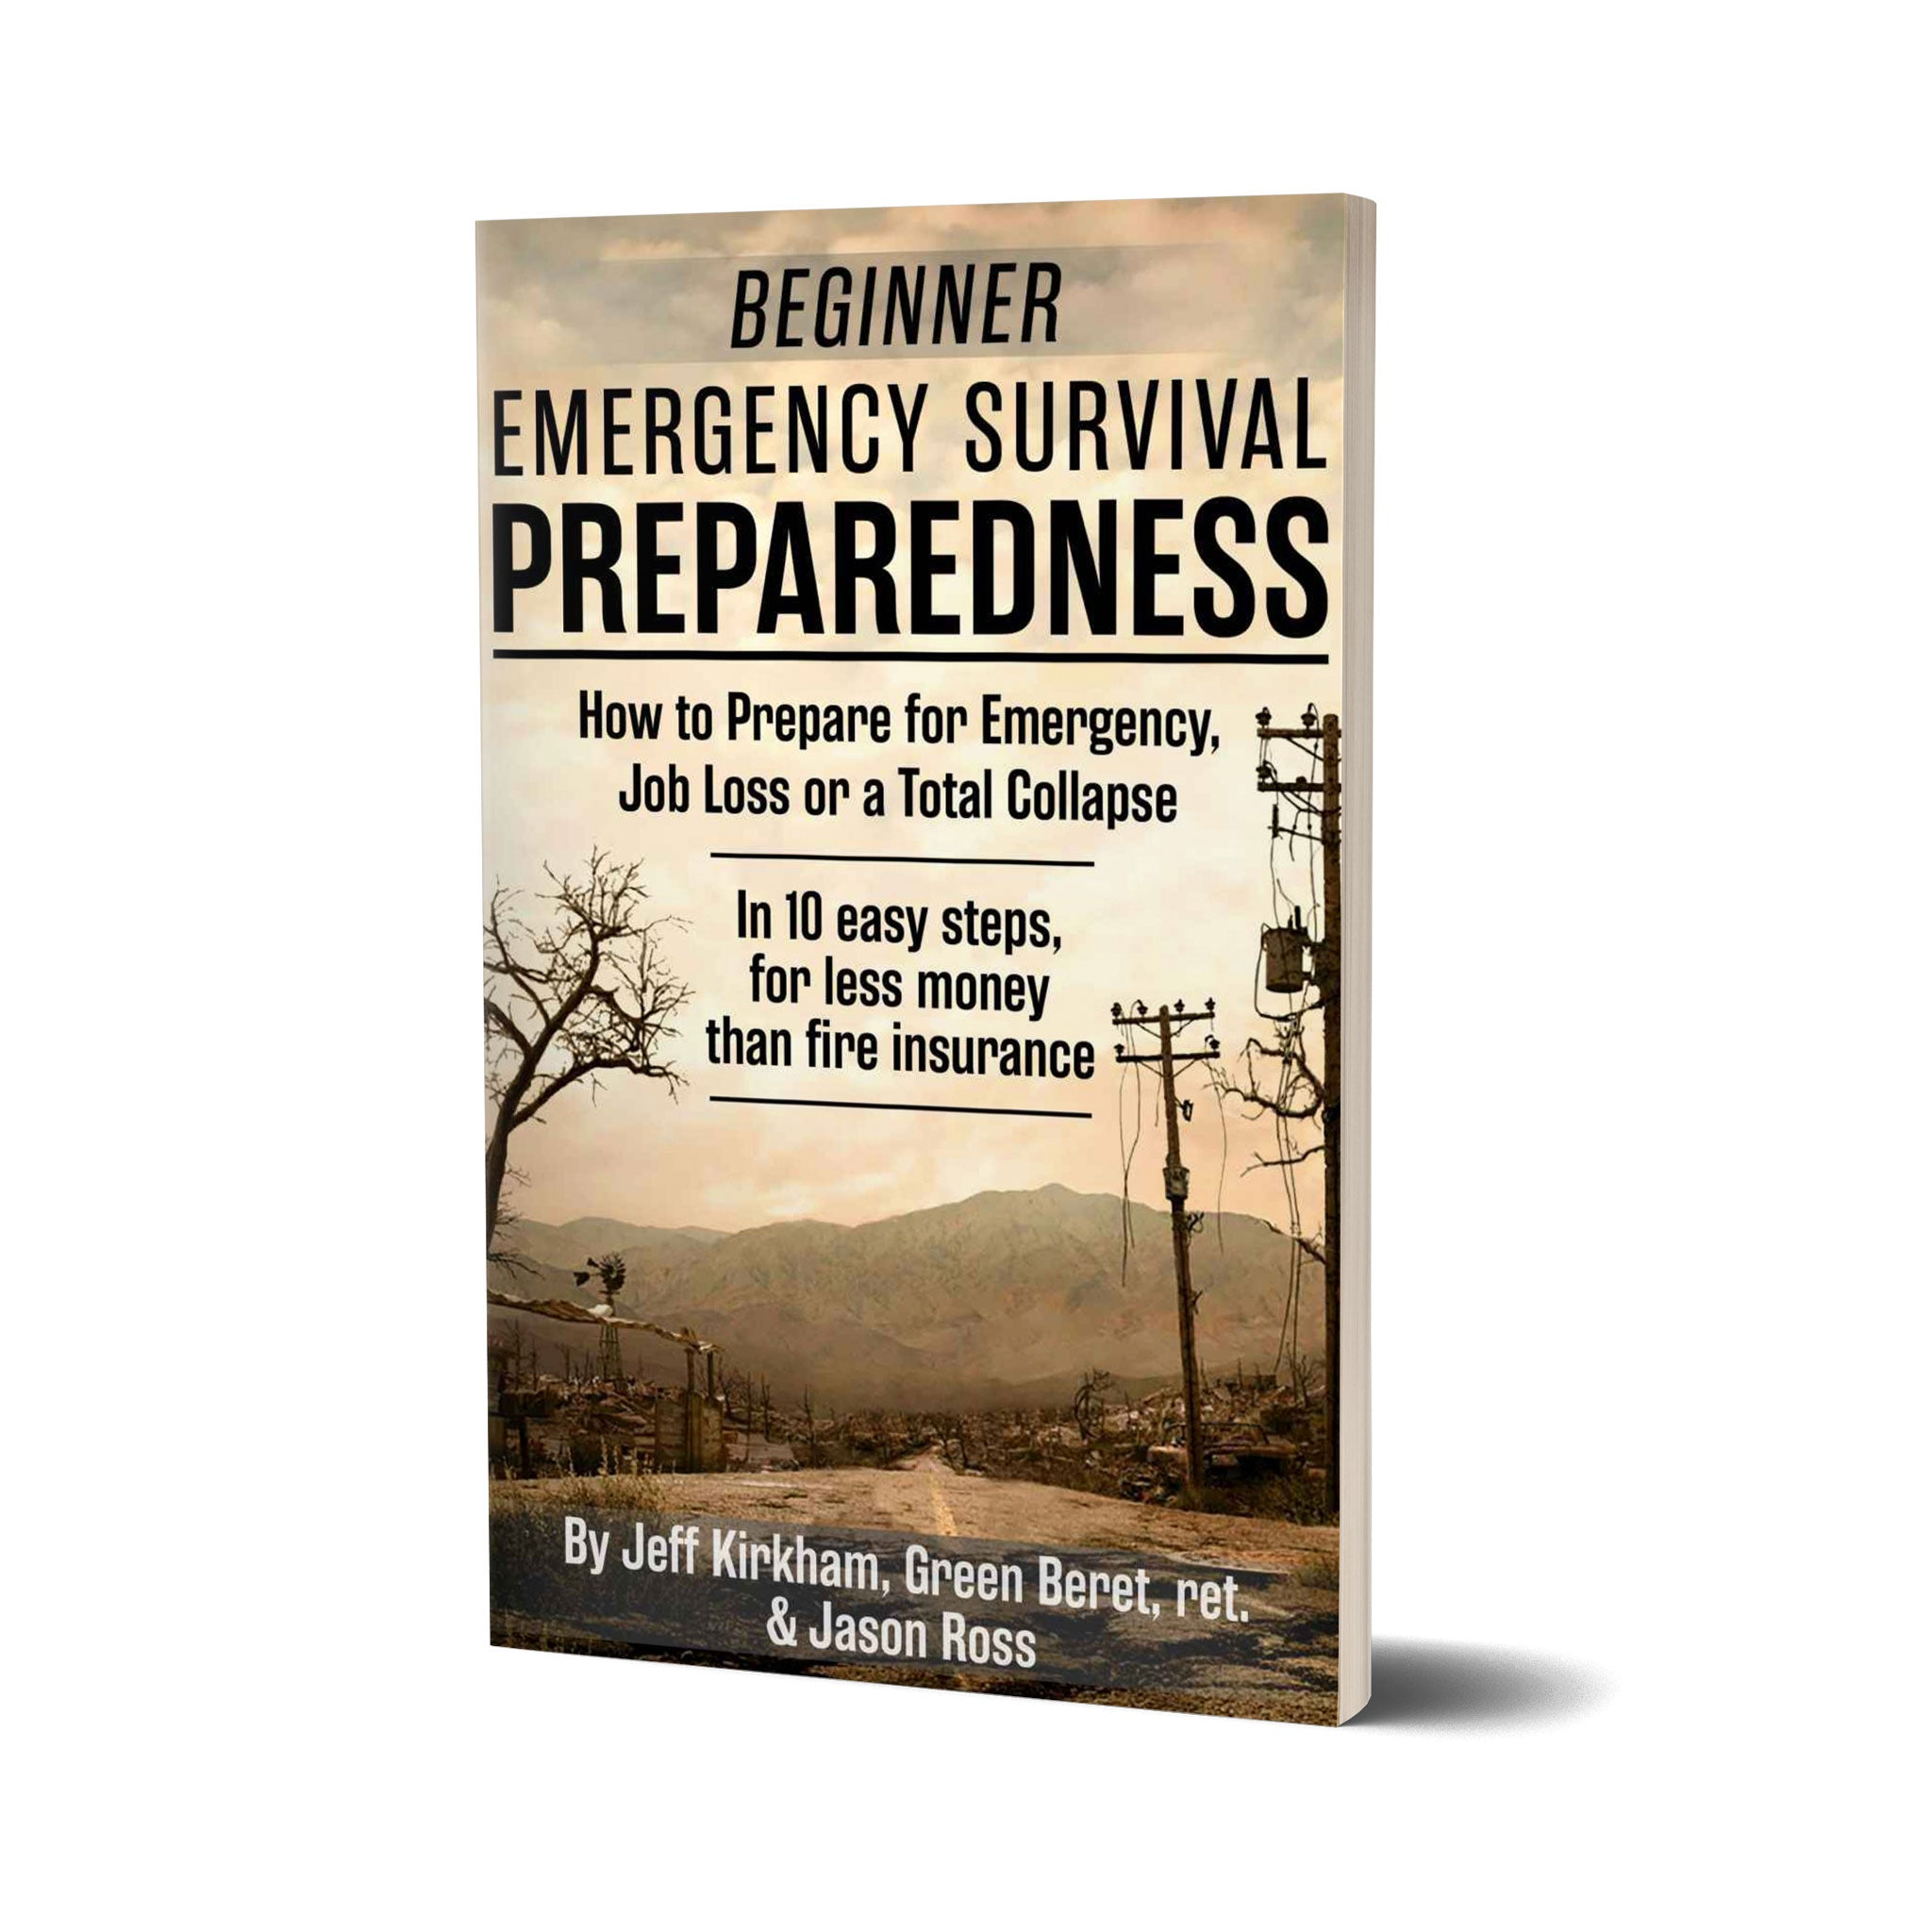 Beginner Emergency Survival Preparedness